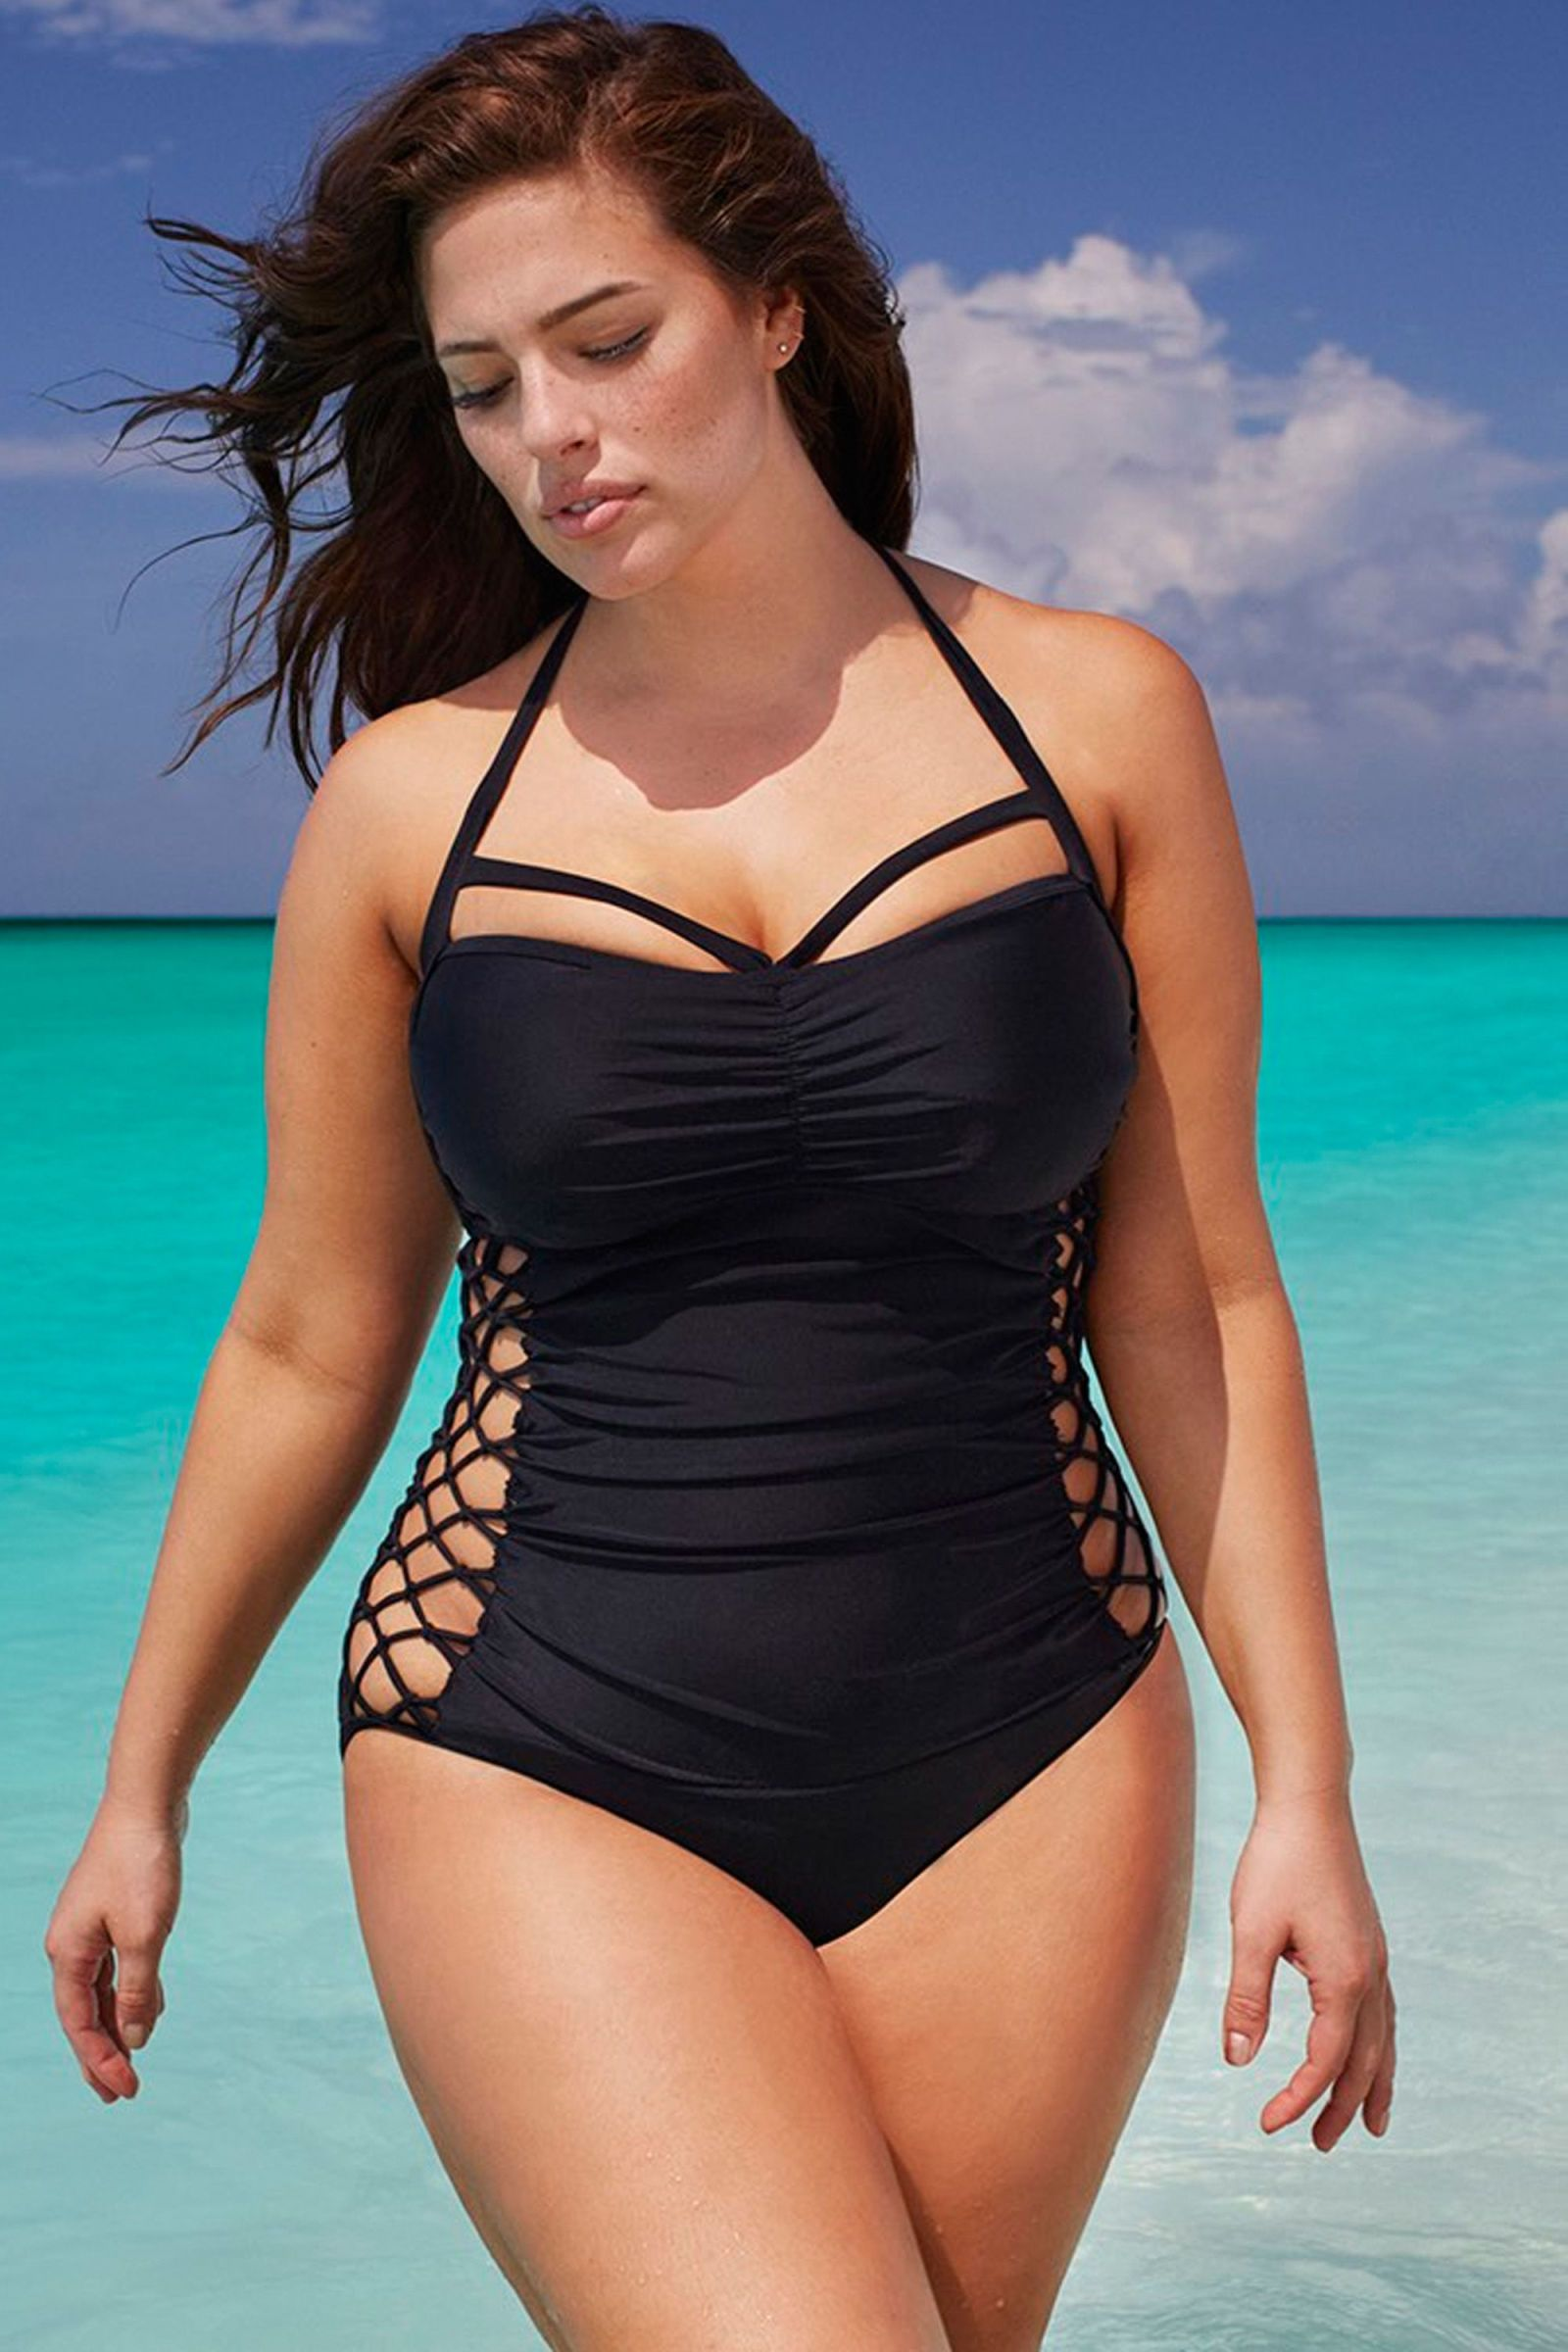 c1e37e6e9b833 These Sexy One-Piece Swimsuits Give Bikinis a Serious Run for Their ...